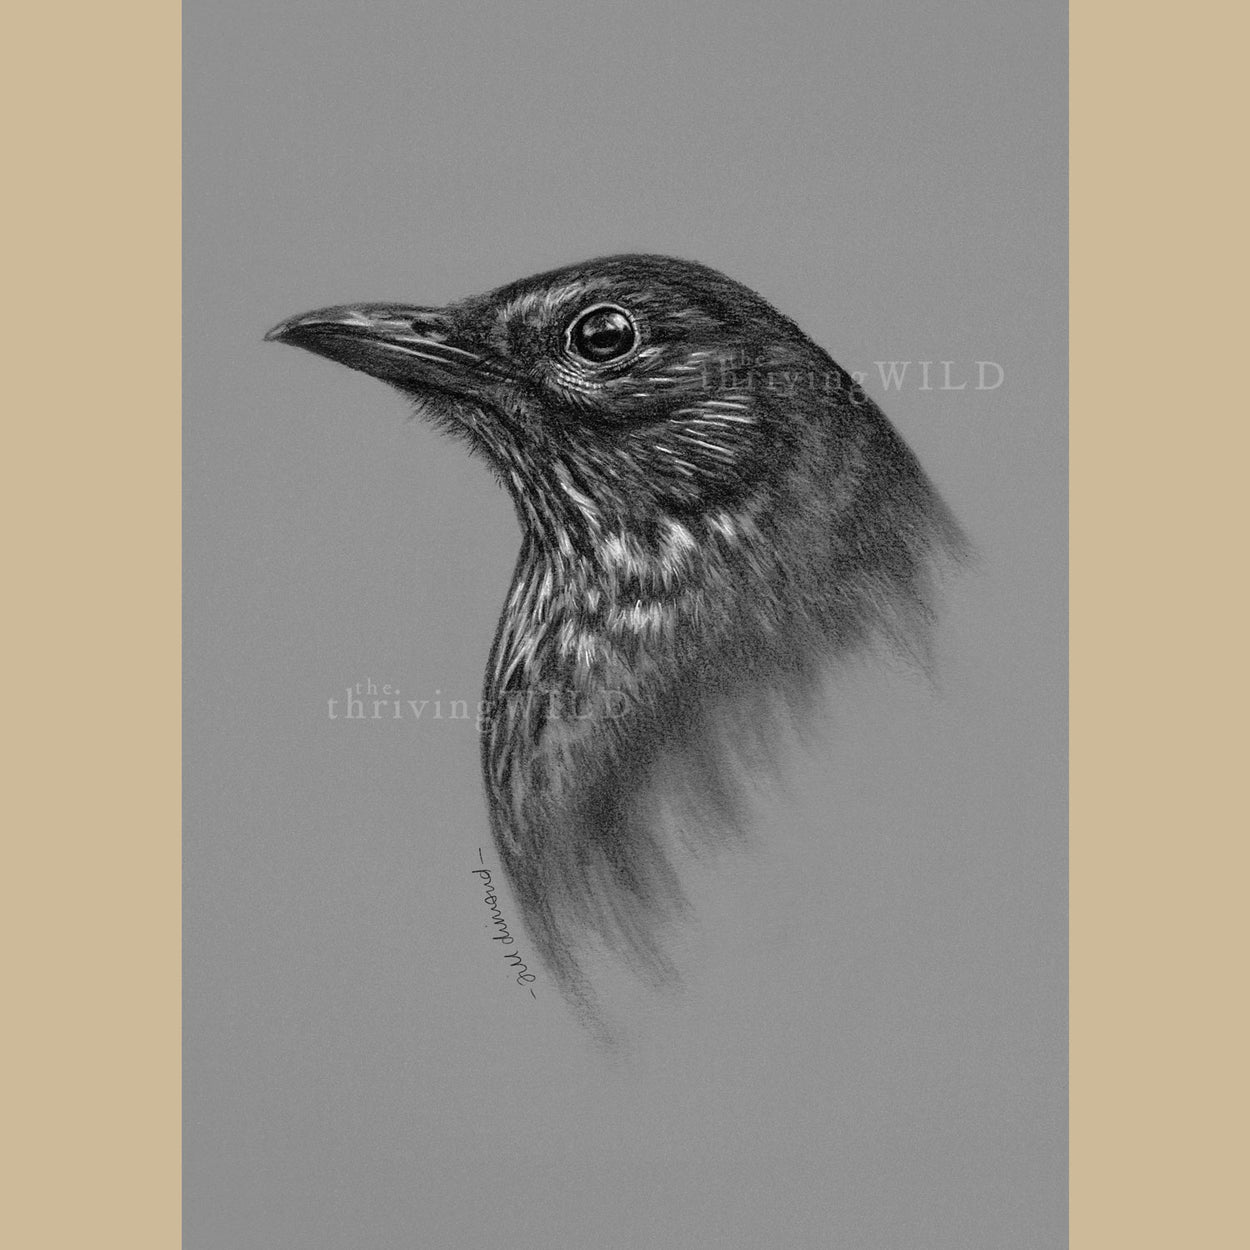 Blackbird Charcoal Drawing - The Thriving Wild - Jill Dimond